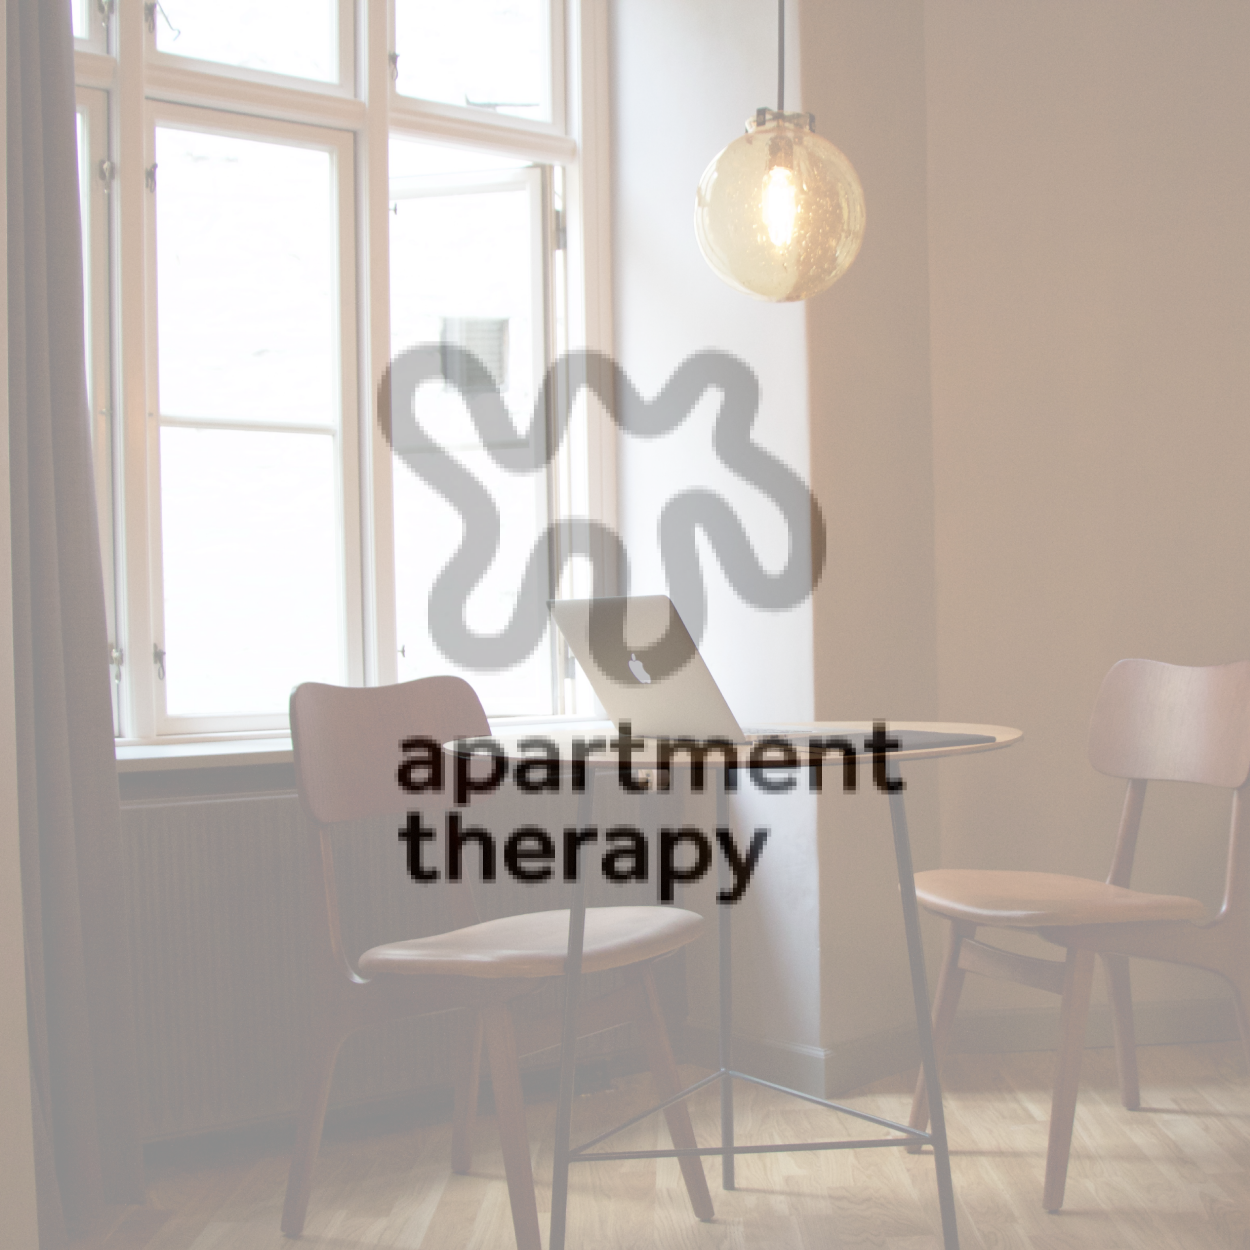 Kaz-Weida-Apartment-Therapy.jpg